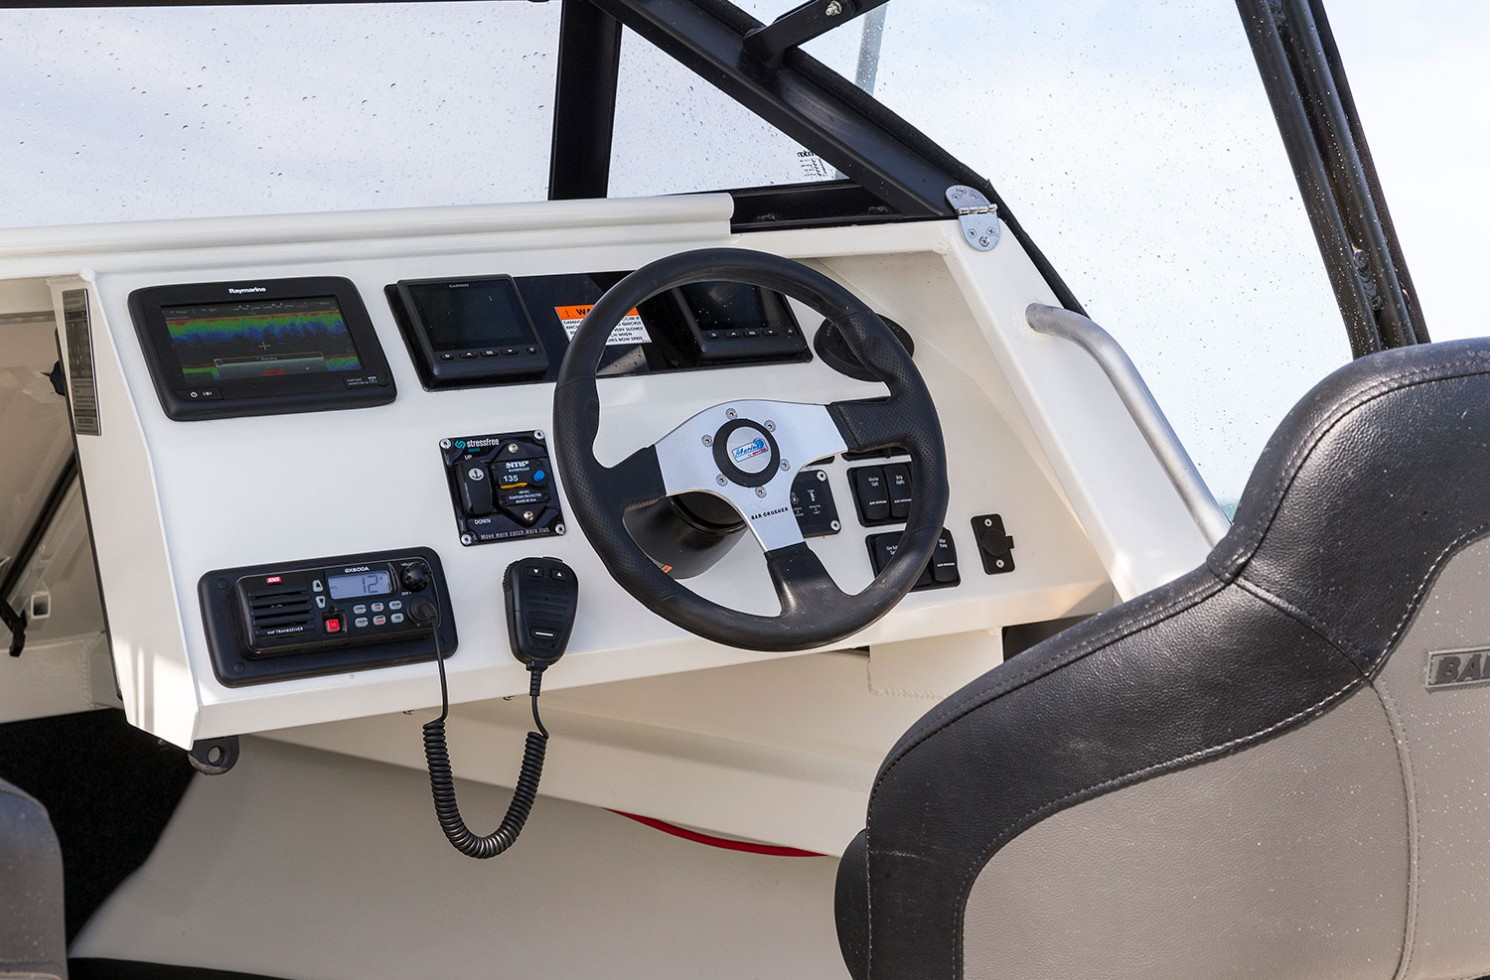 Functional dash layout on all C series models.